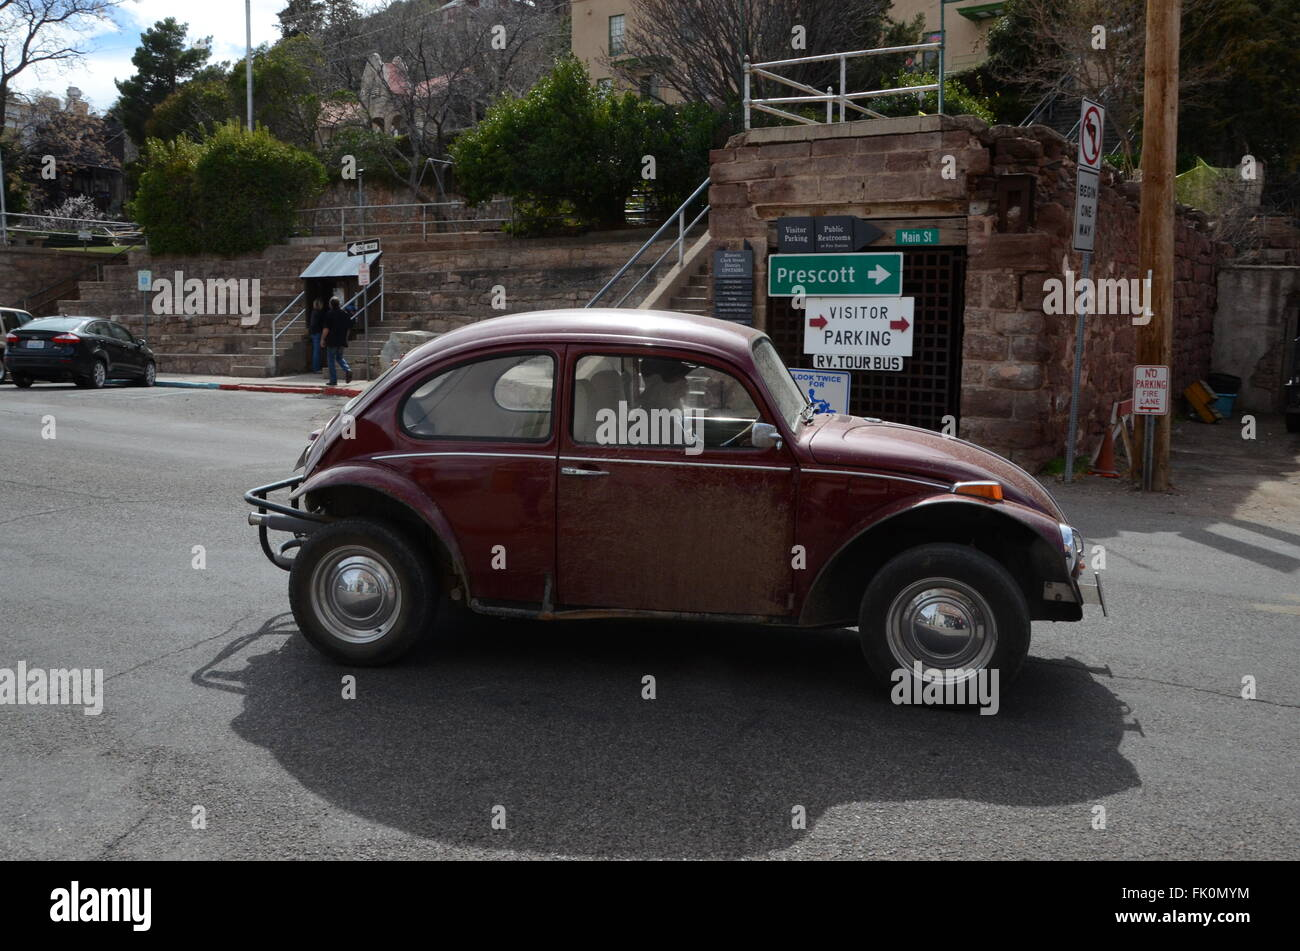 vw beetle jerome ghost town driven by old hippy main st prescott direction sigm - Stock Image